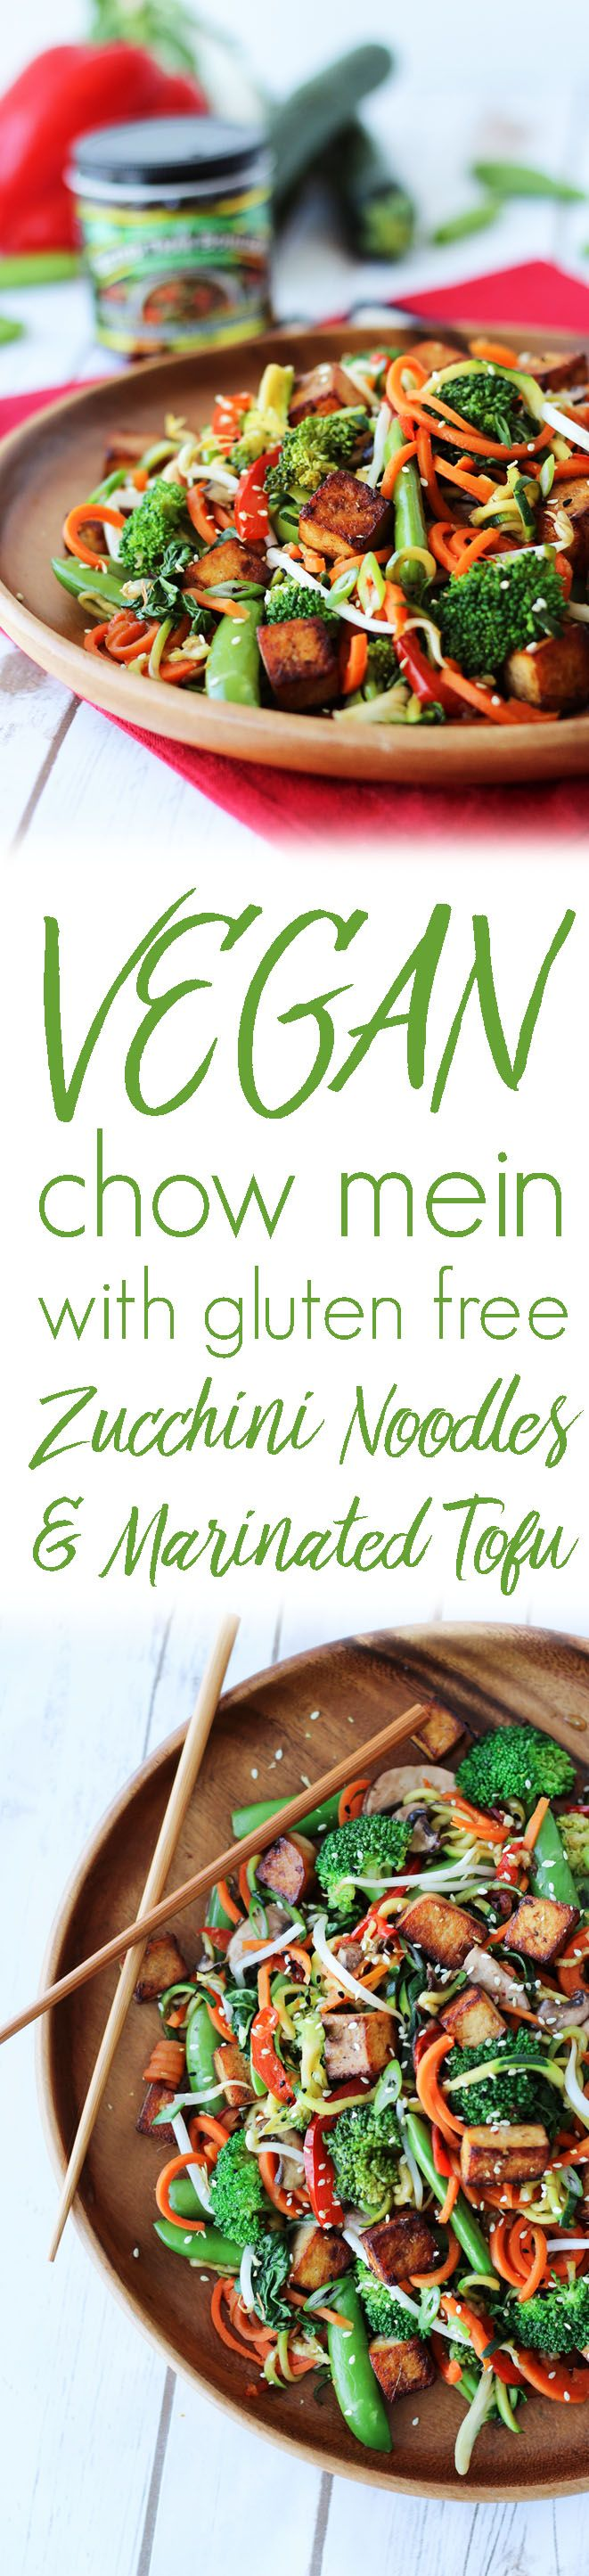 This Vegan Chow Mein features delicious marinated tofu and gluten free low carb zucchini noodles. It's low calorie, low fat Chinese food at it's best!